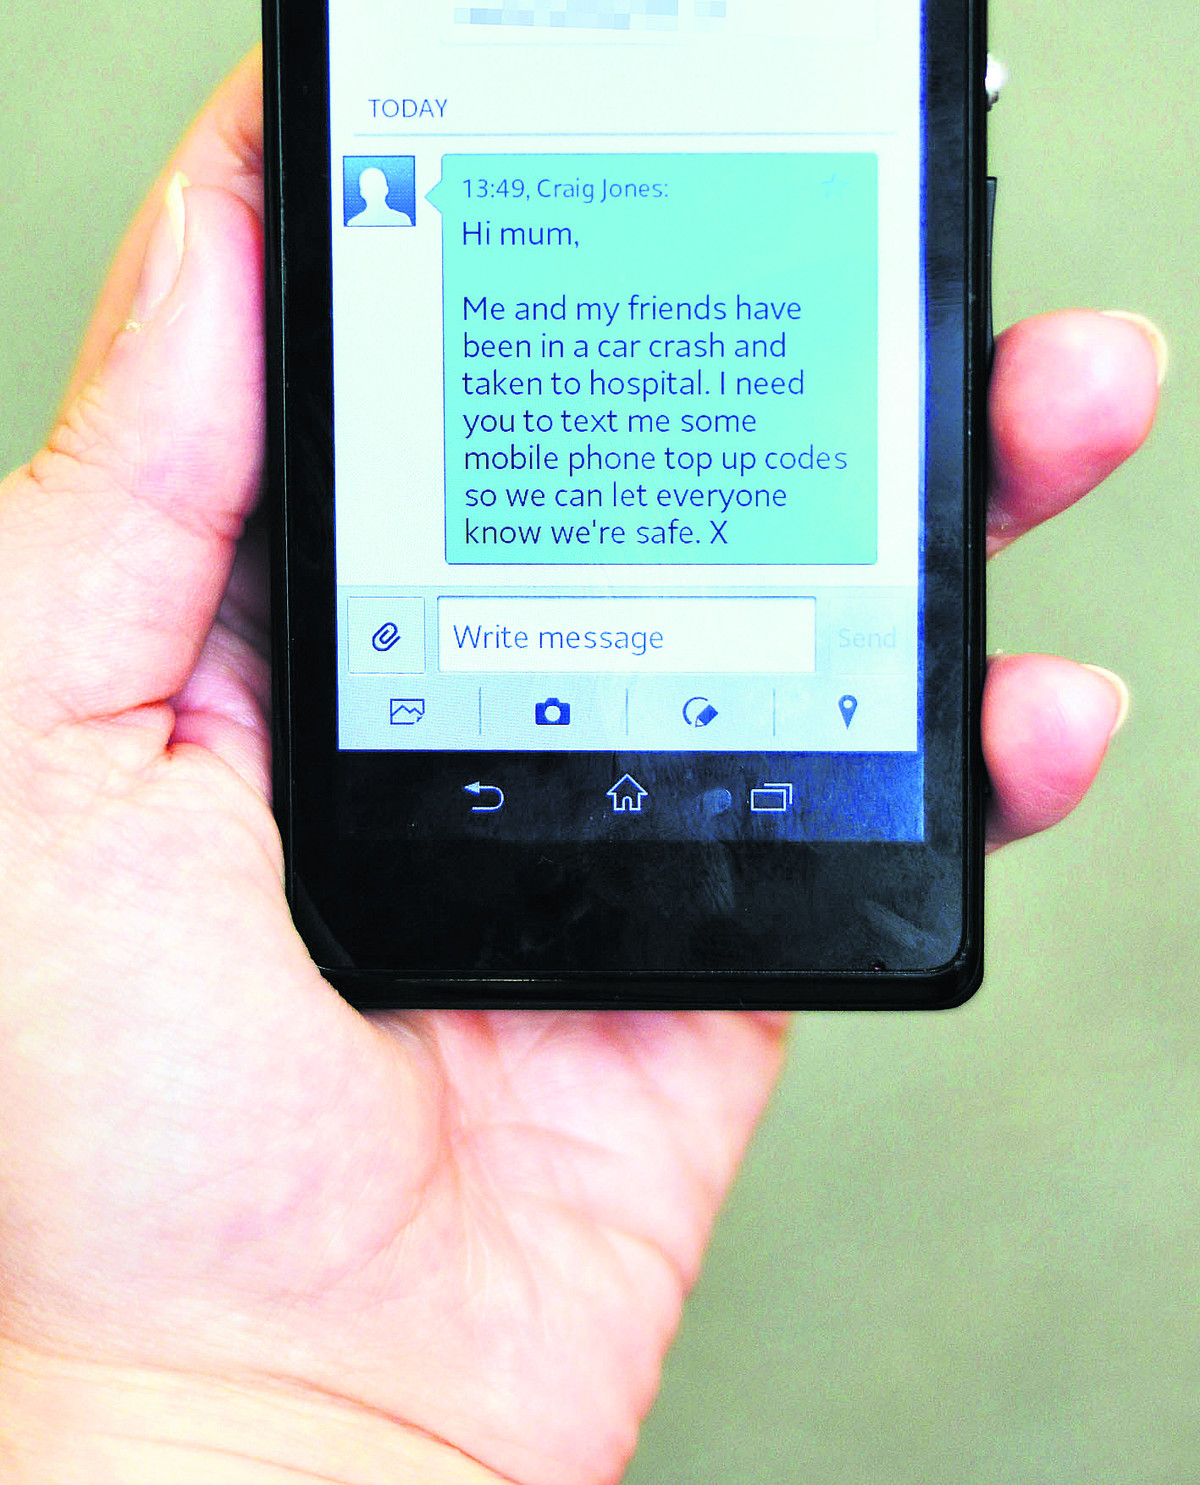 Police issue warning on 'accident' text